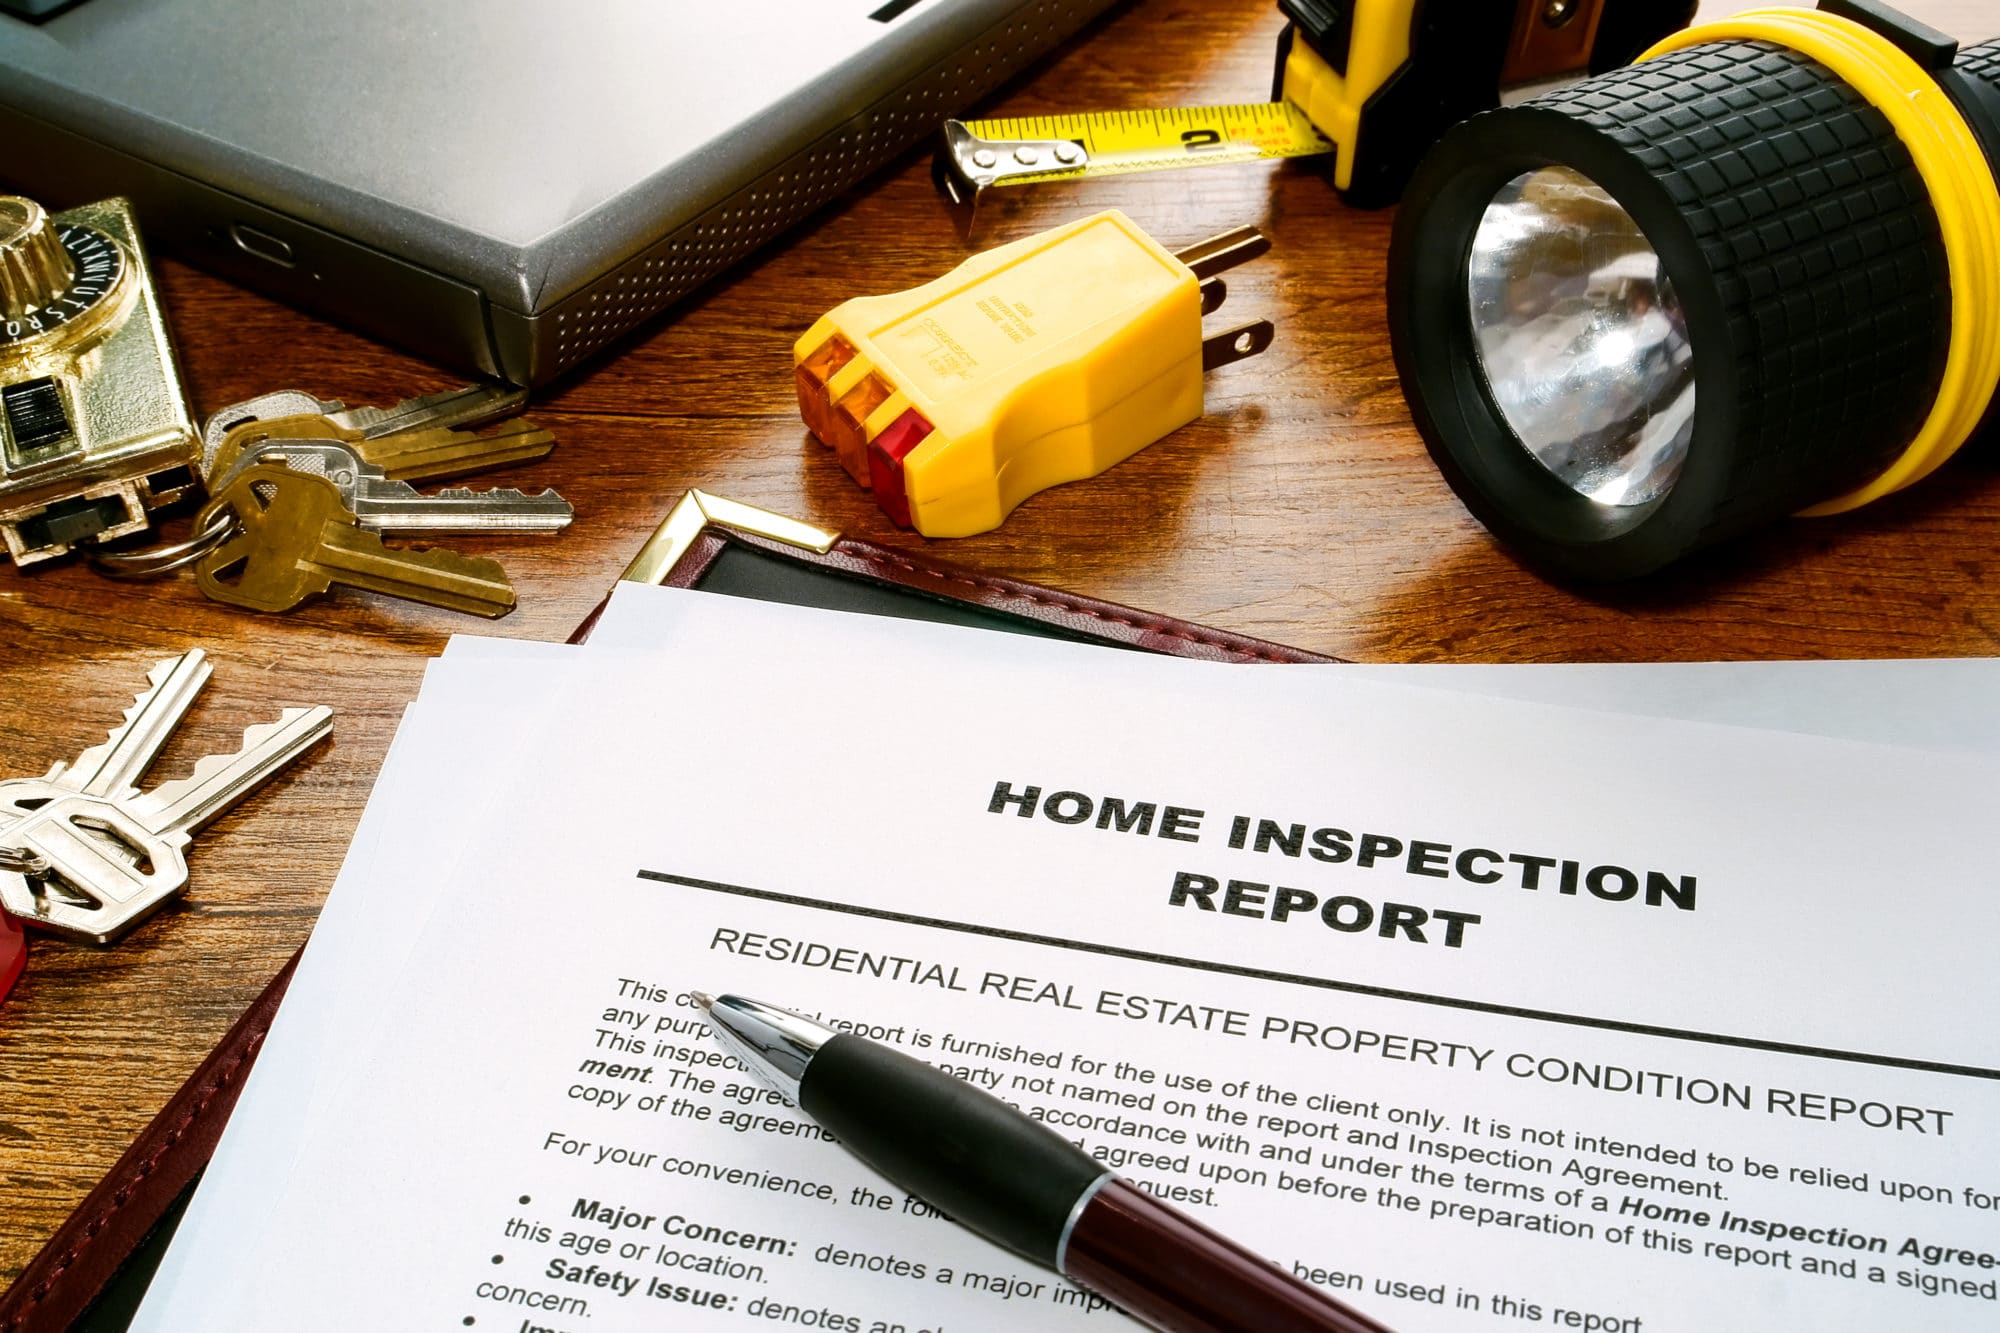 Inspect and evaluate your home's condition carefully!